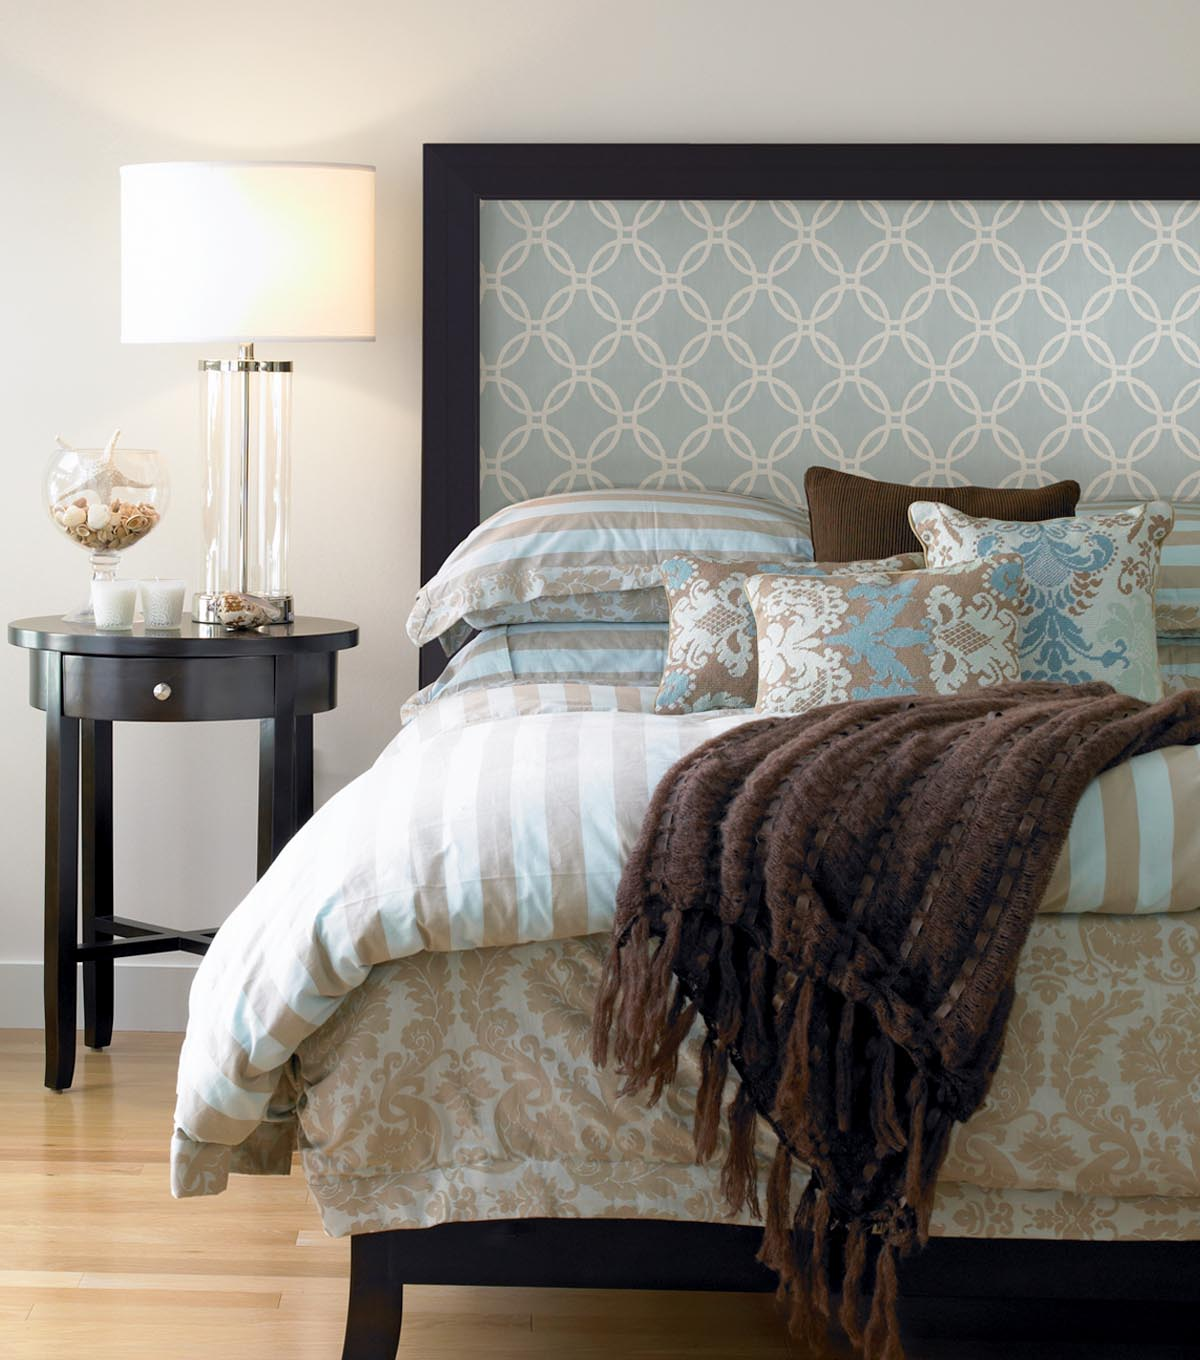 Design Your Own Headboard : Fab way to create your own custom headboard, using wallpaper